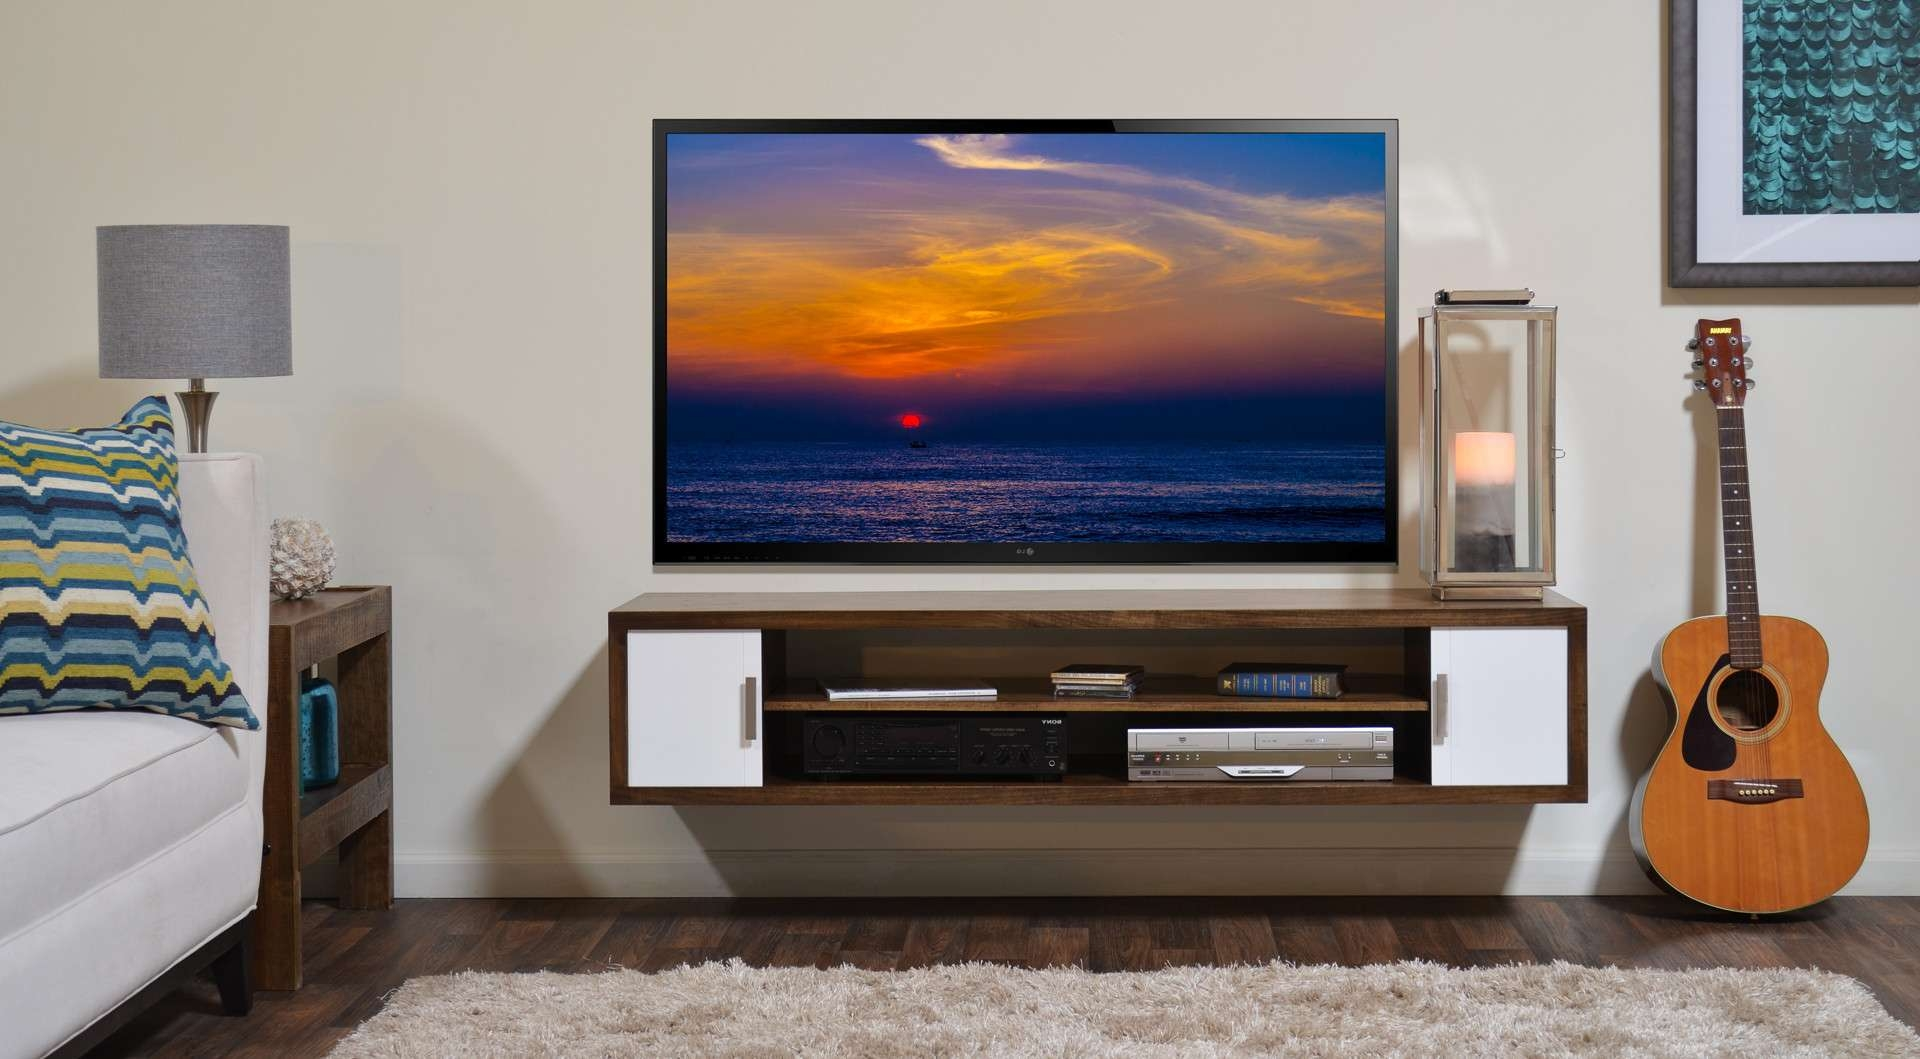 Nice Design Of The Tv Stand White Wall Can Be Decor With Wooden With Regard To White Wall Mounted Tv Stands (View 15 of 15)